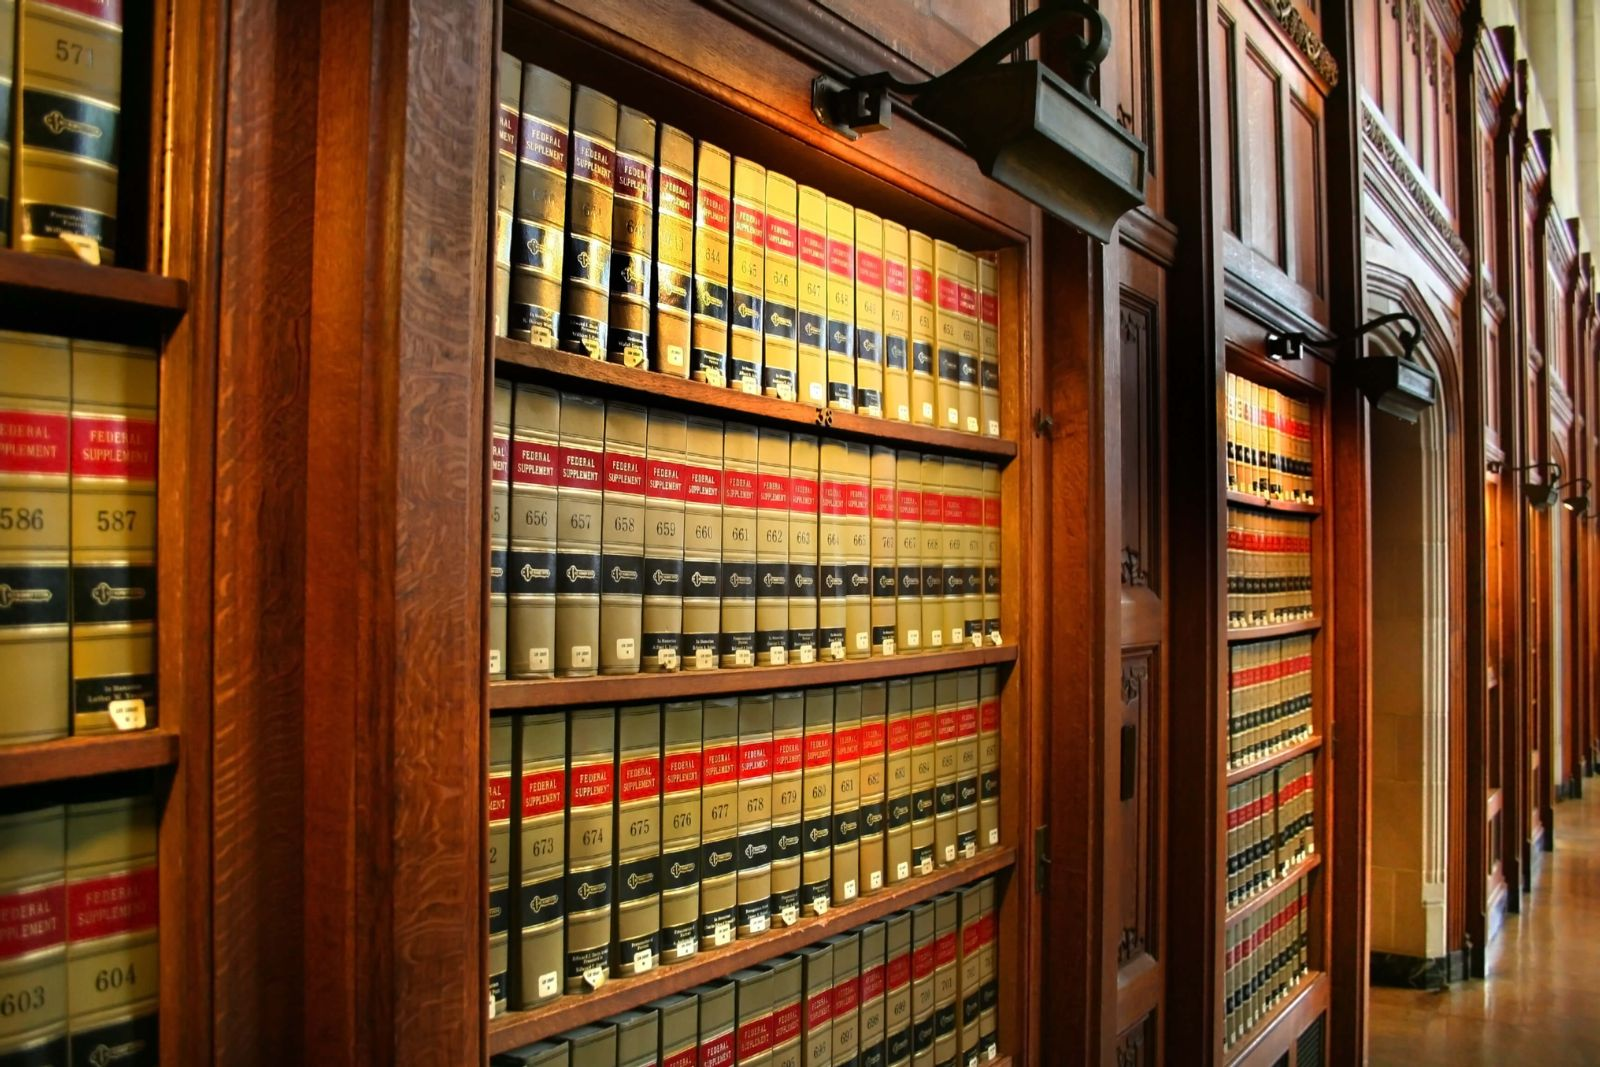 Swier Law Firm Library